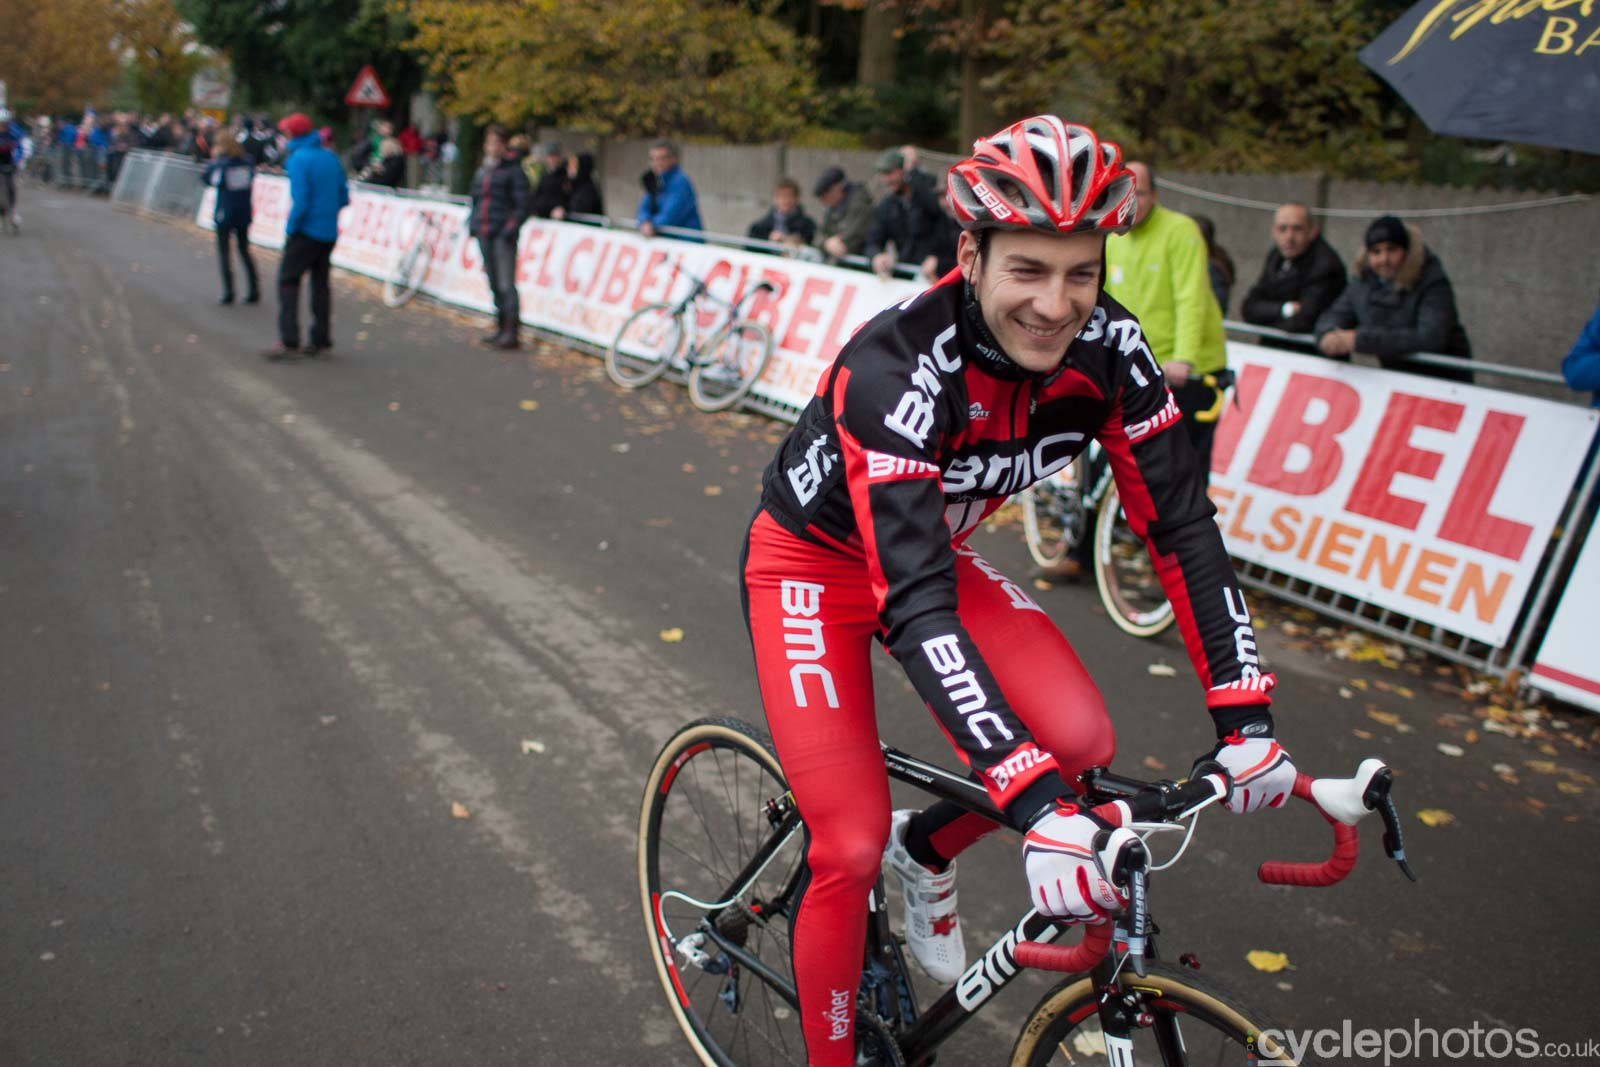 2012-cyclephotos-cyclocross-hamme-150004-julien-taramarcaz